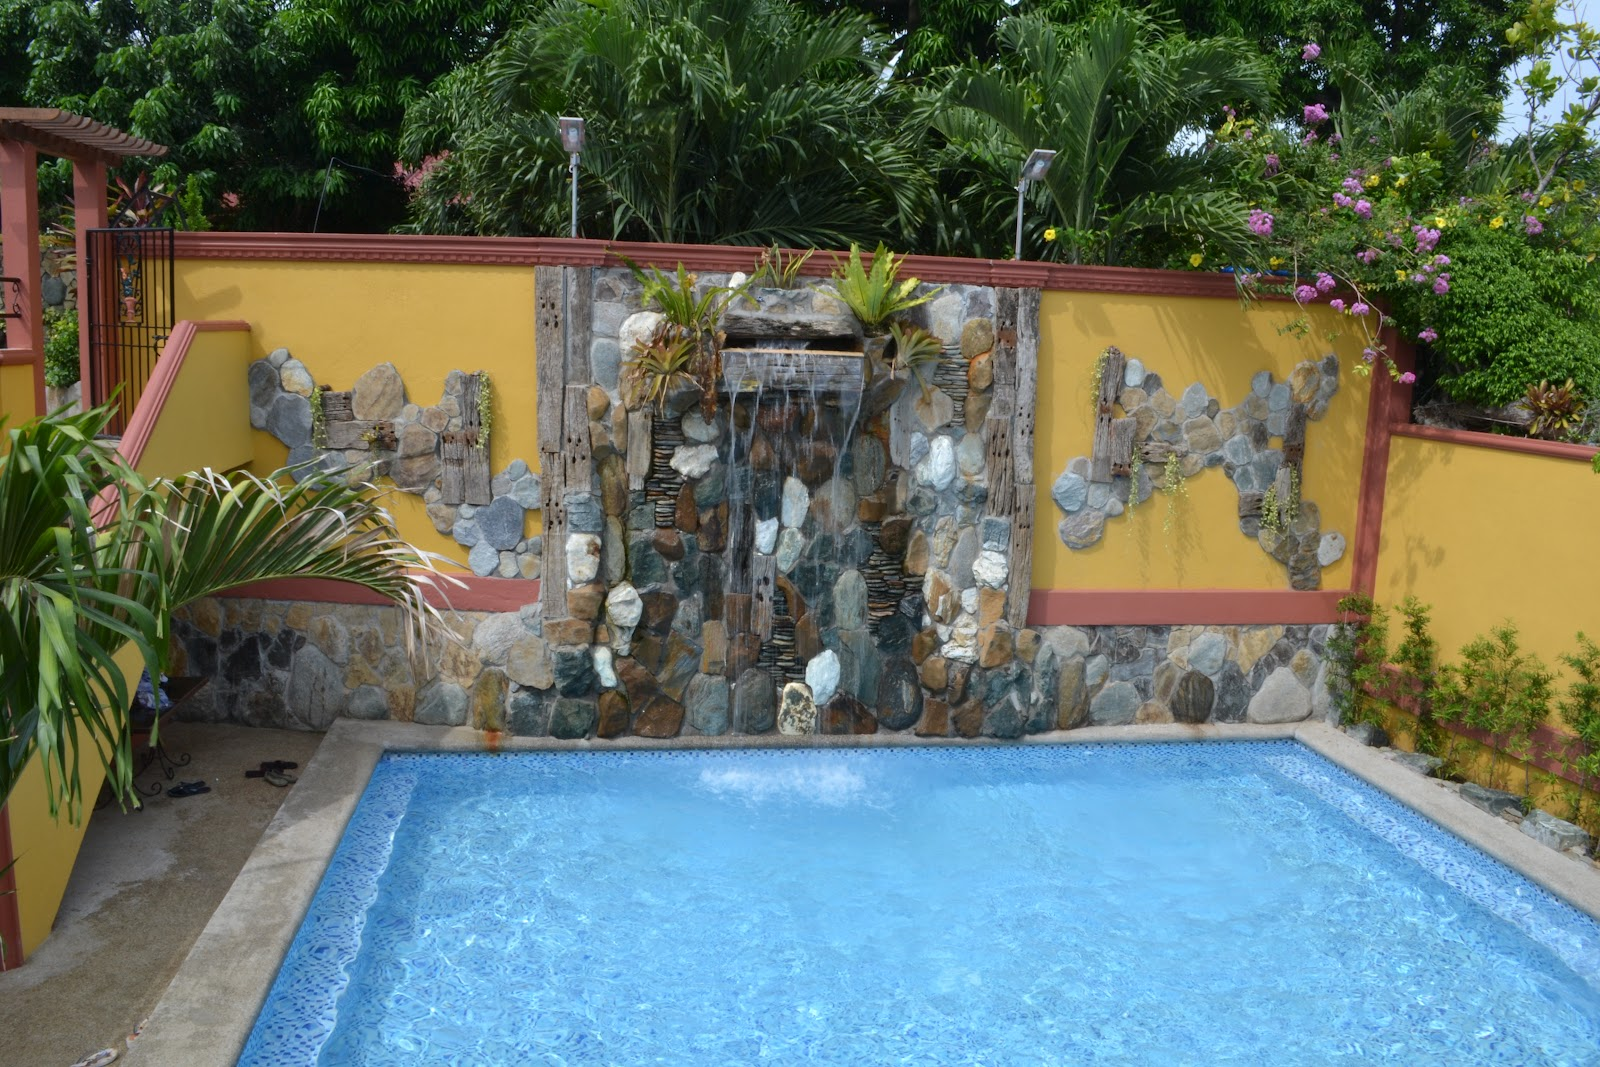 Jardin de dasmari as resort stories of a mom Private swimming pool for rent in cavite